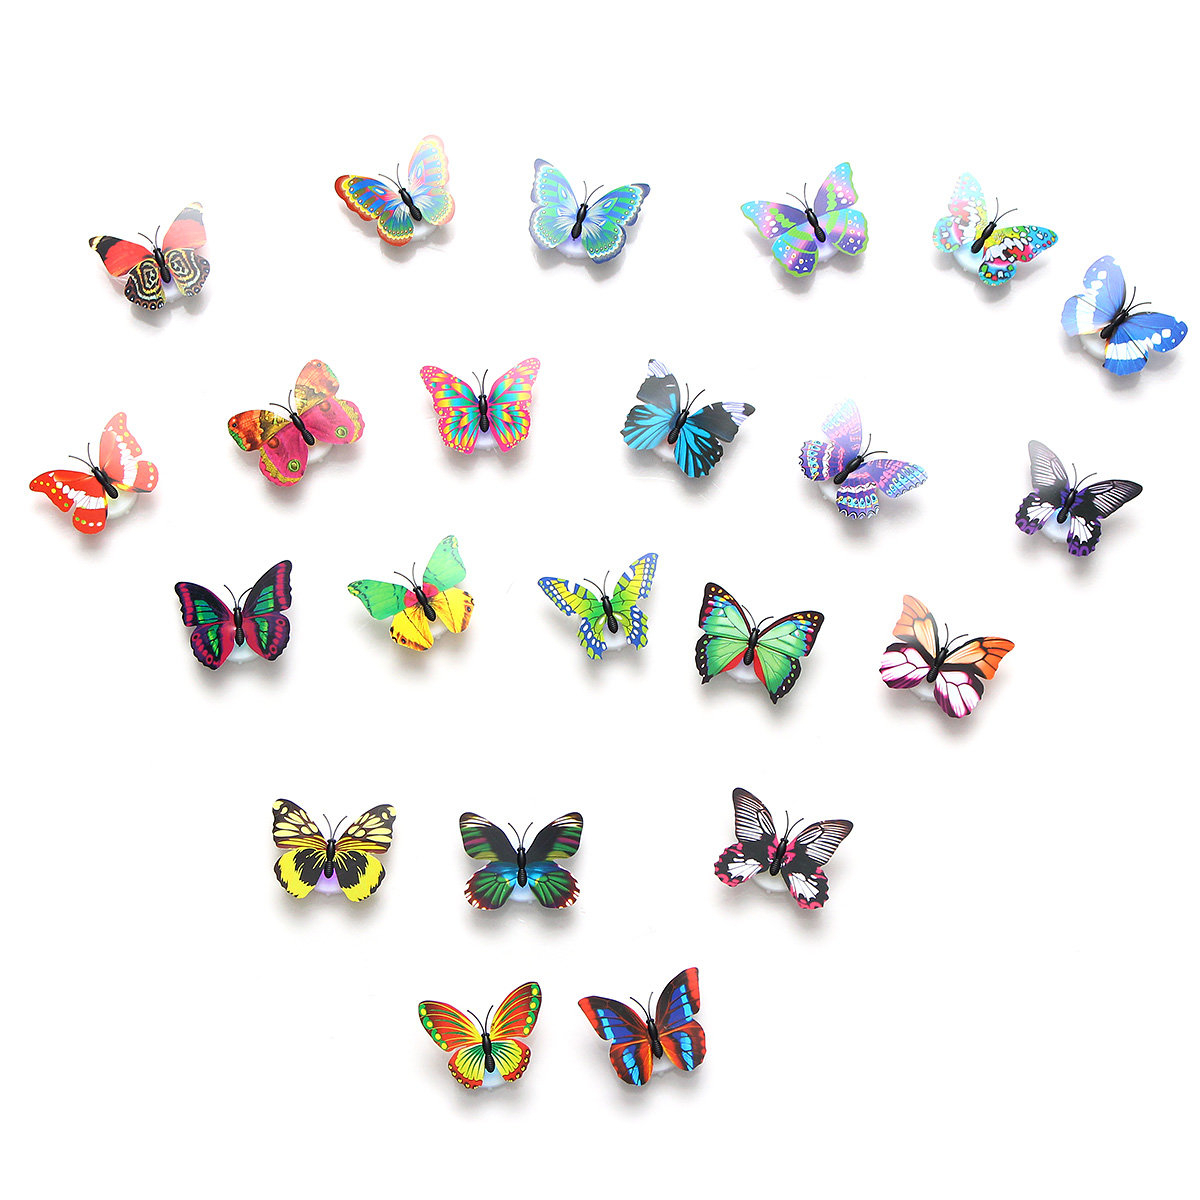 Widely Used 2Pcs Led Glowing 3D Butterfly Night Light Sticker Art Design Mural In 3 Piece Capri Butterfly Wall Decor Sets (Gallery 7 of 20)